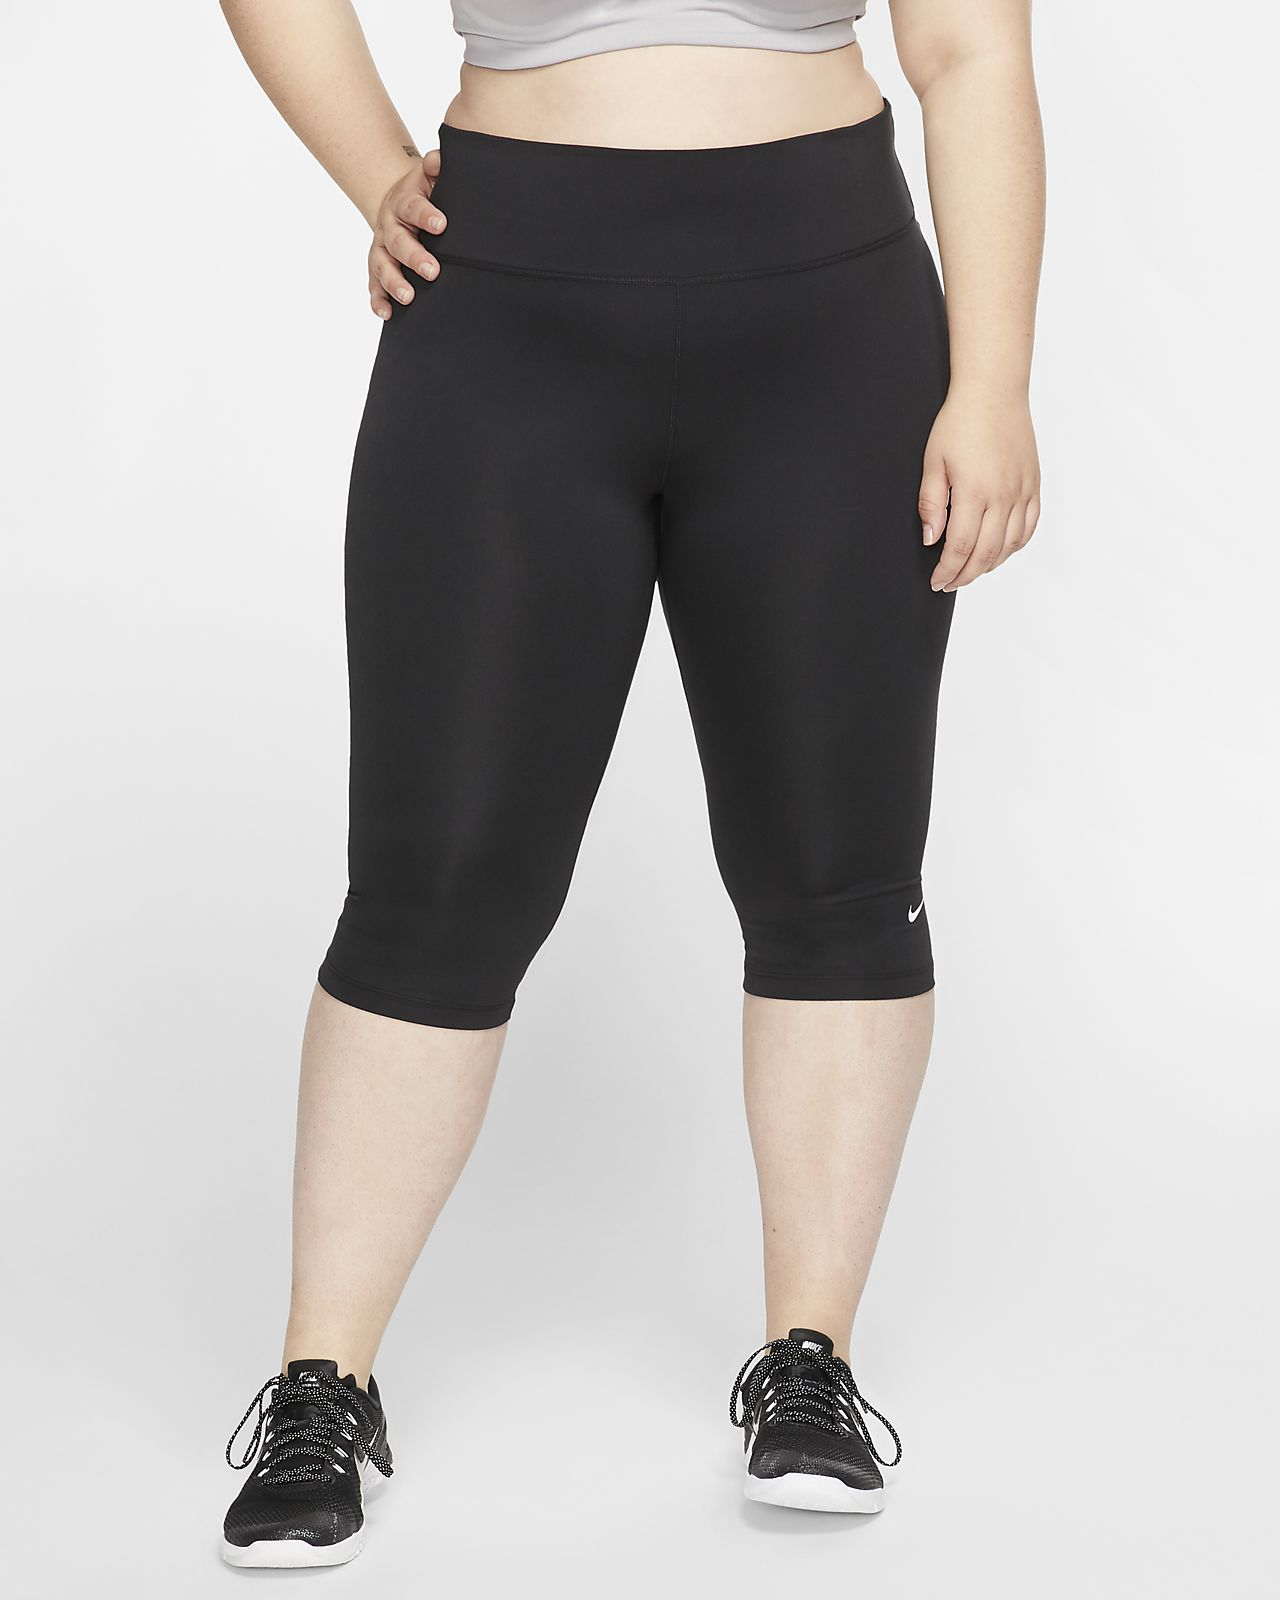 Nike One Women's Capris (Plus Size)